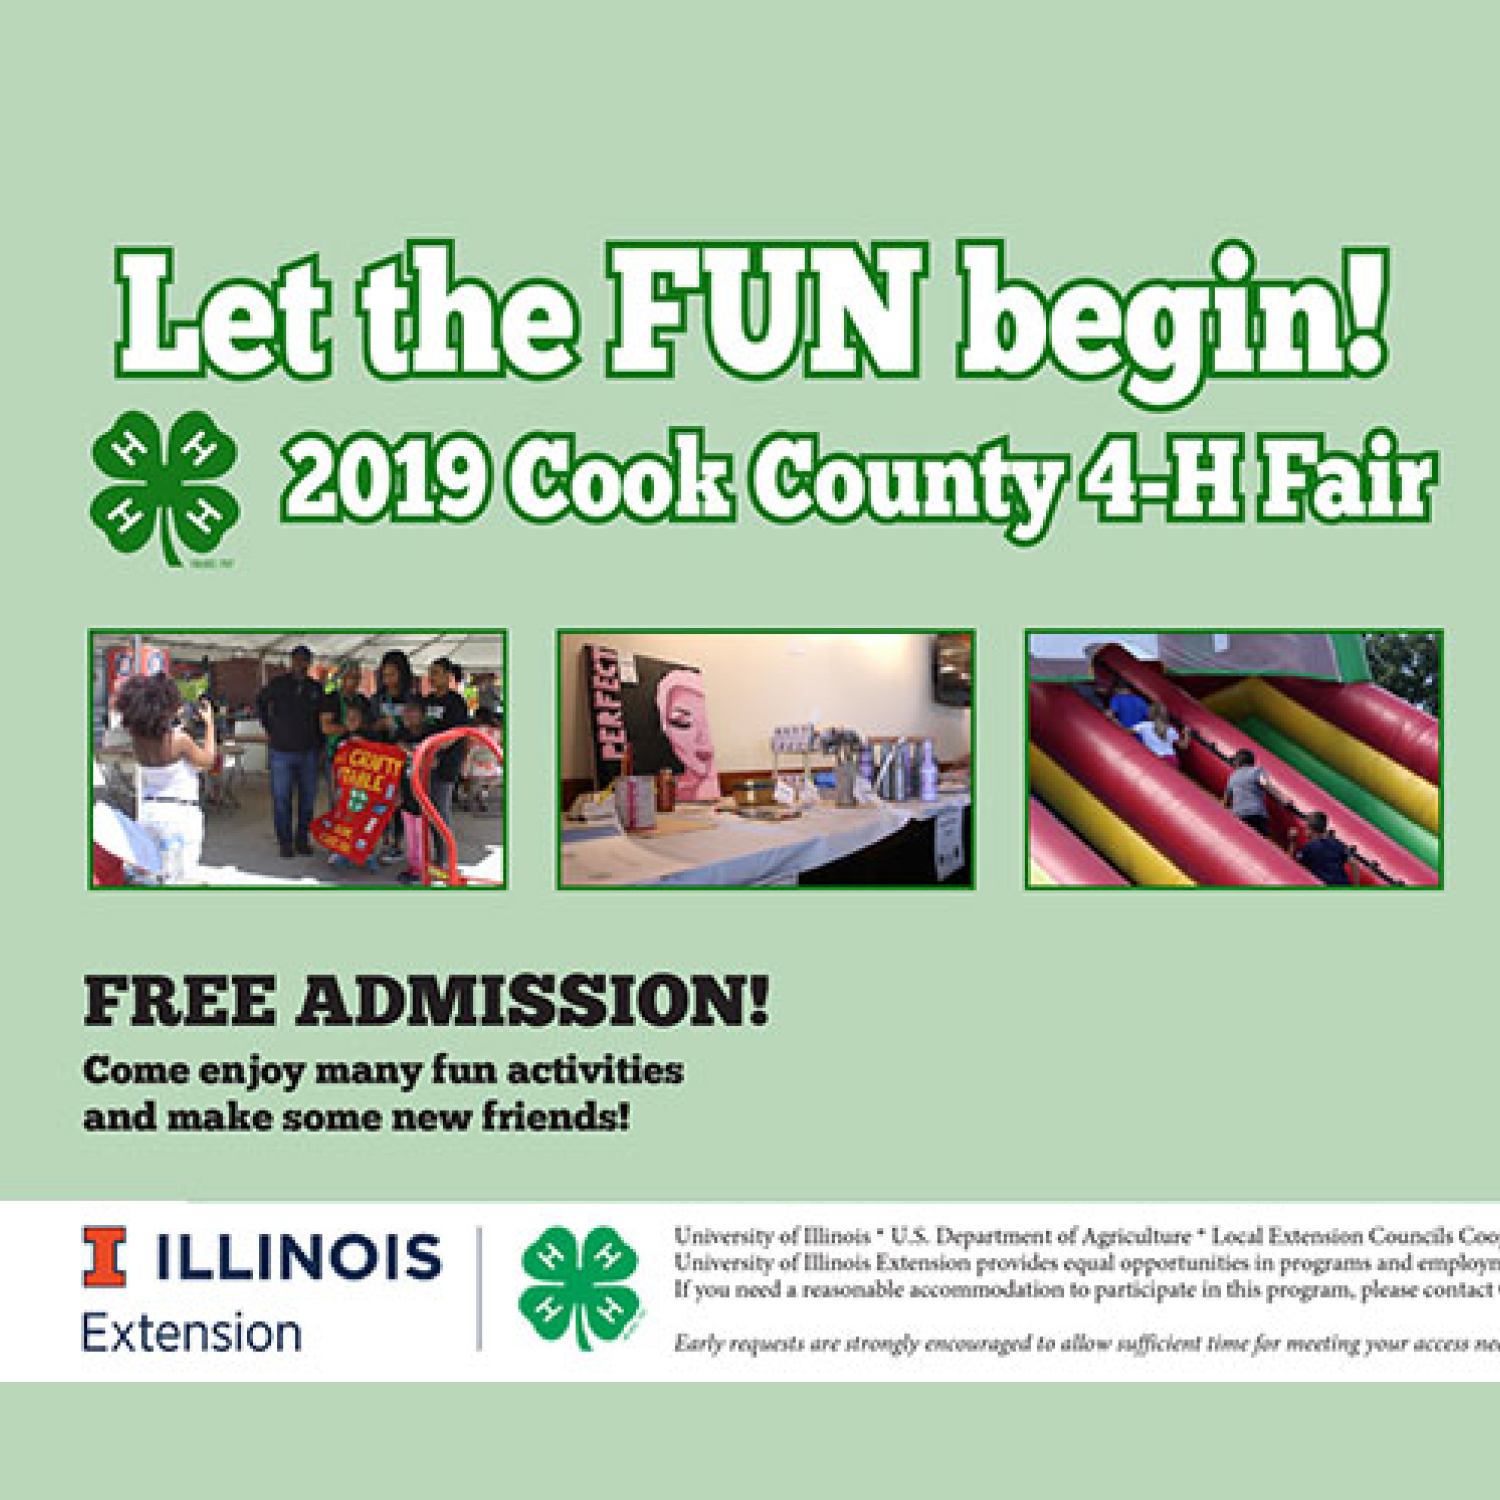 2019 Cook County 4-H Fair - Saturday, July 20, 2019 • 9:30 AM - 4 PM